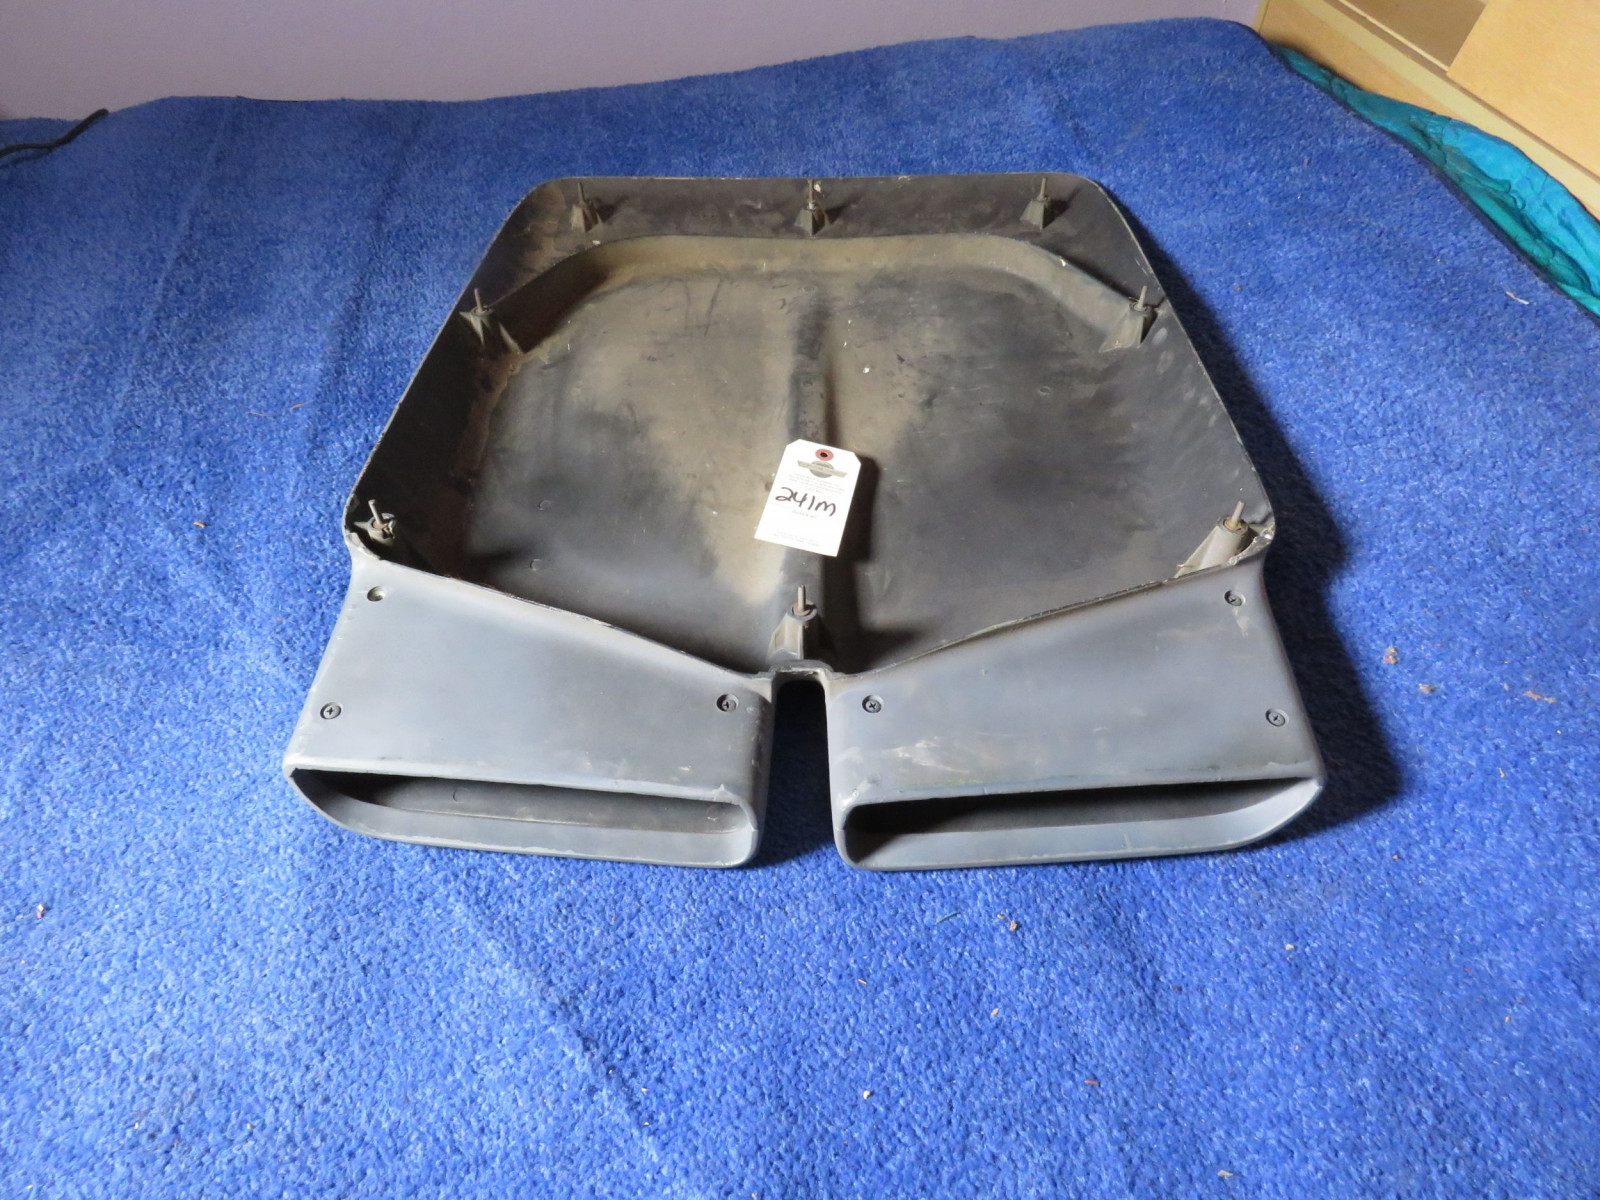 1972 Dodge Dart Dual Snorkel Hood Scoop Original Parts Number 3573698 - Image 2